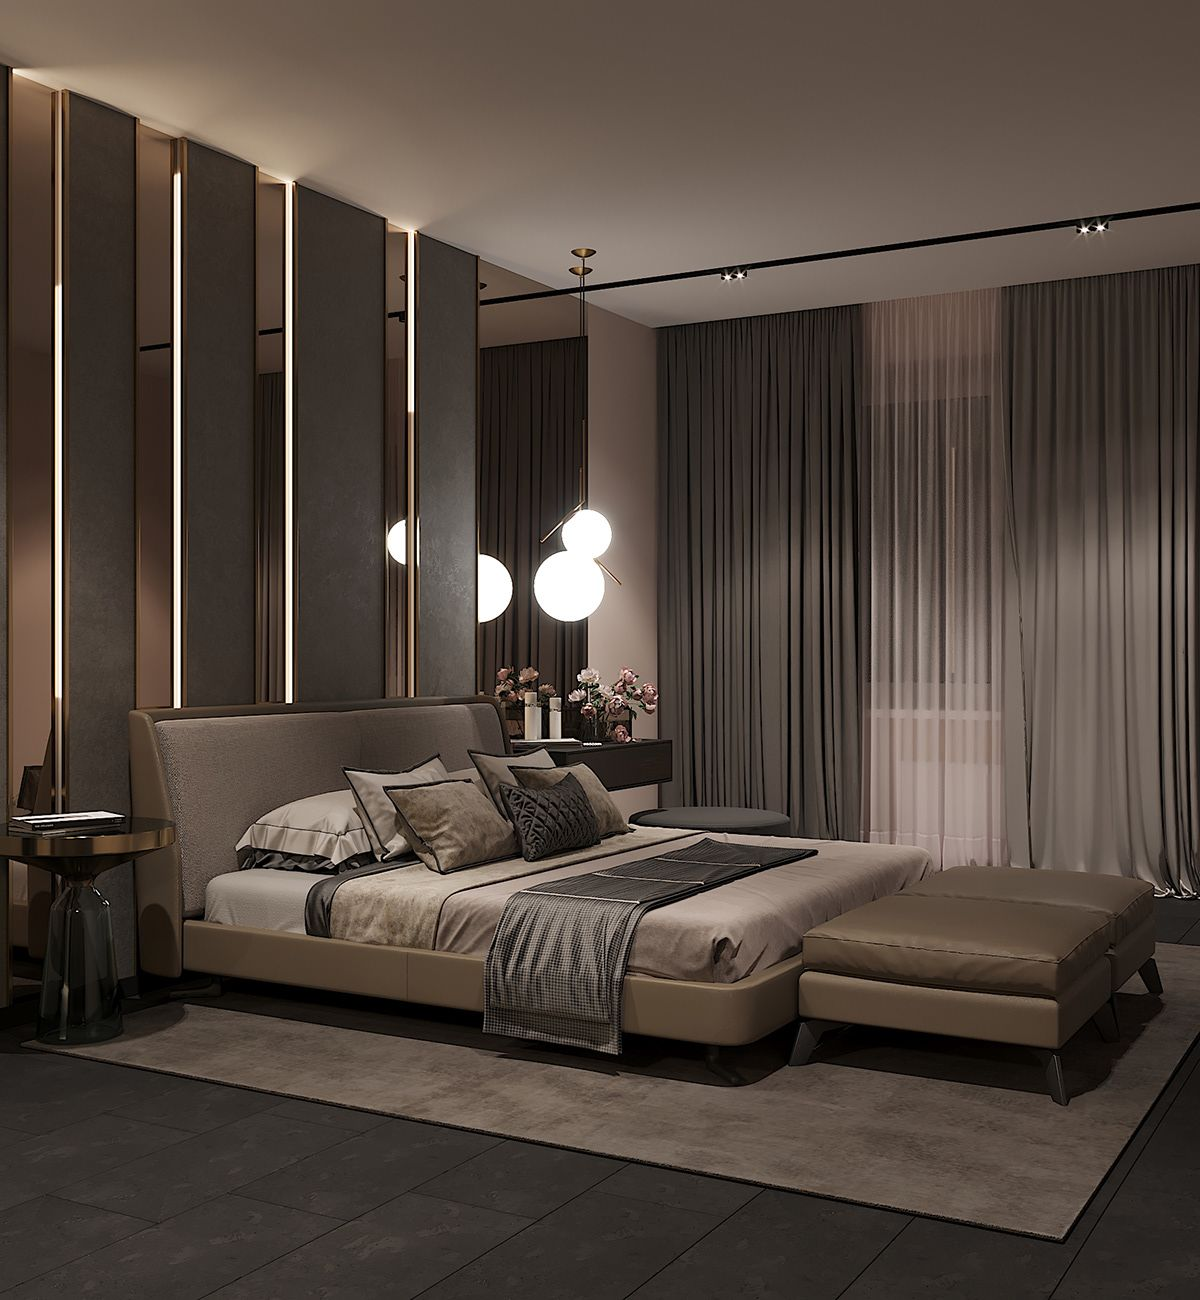 Bedroom In Contemporary Style On Behance: Https://www.behance.net/gallery/72805713/Bedroom-in